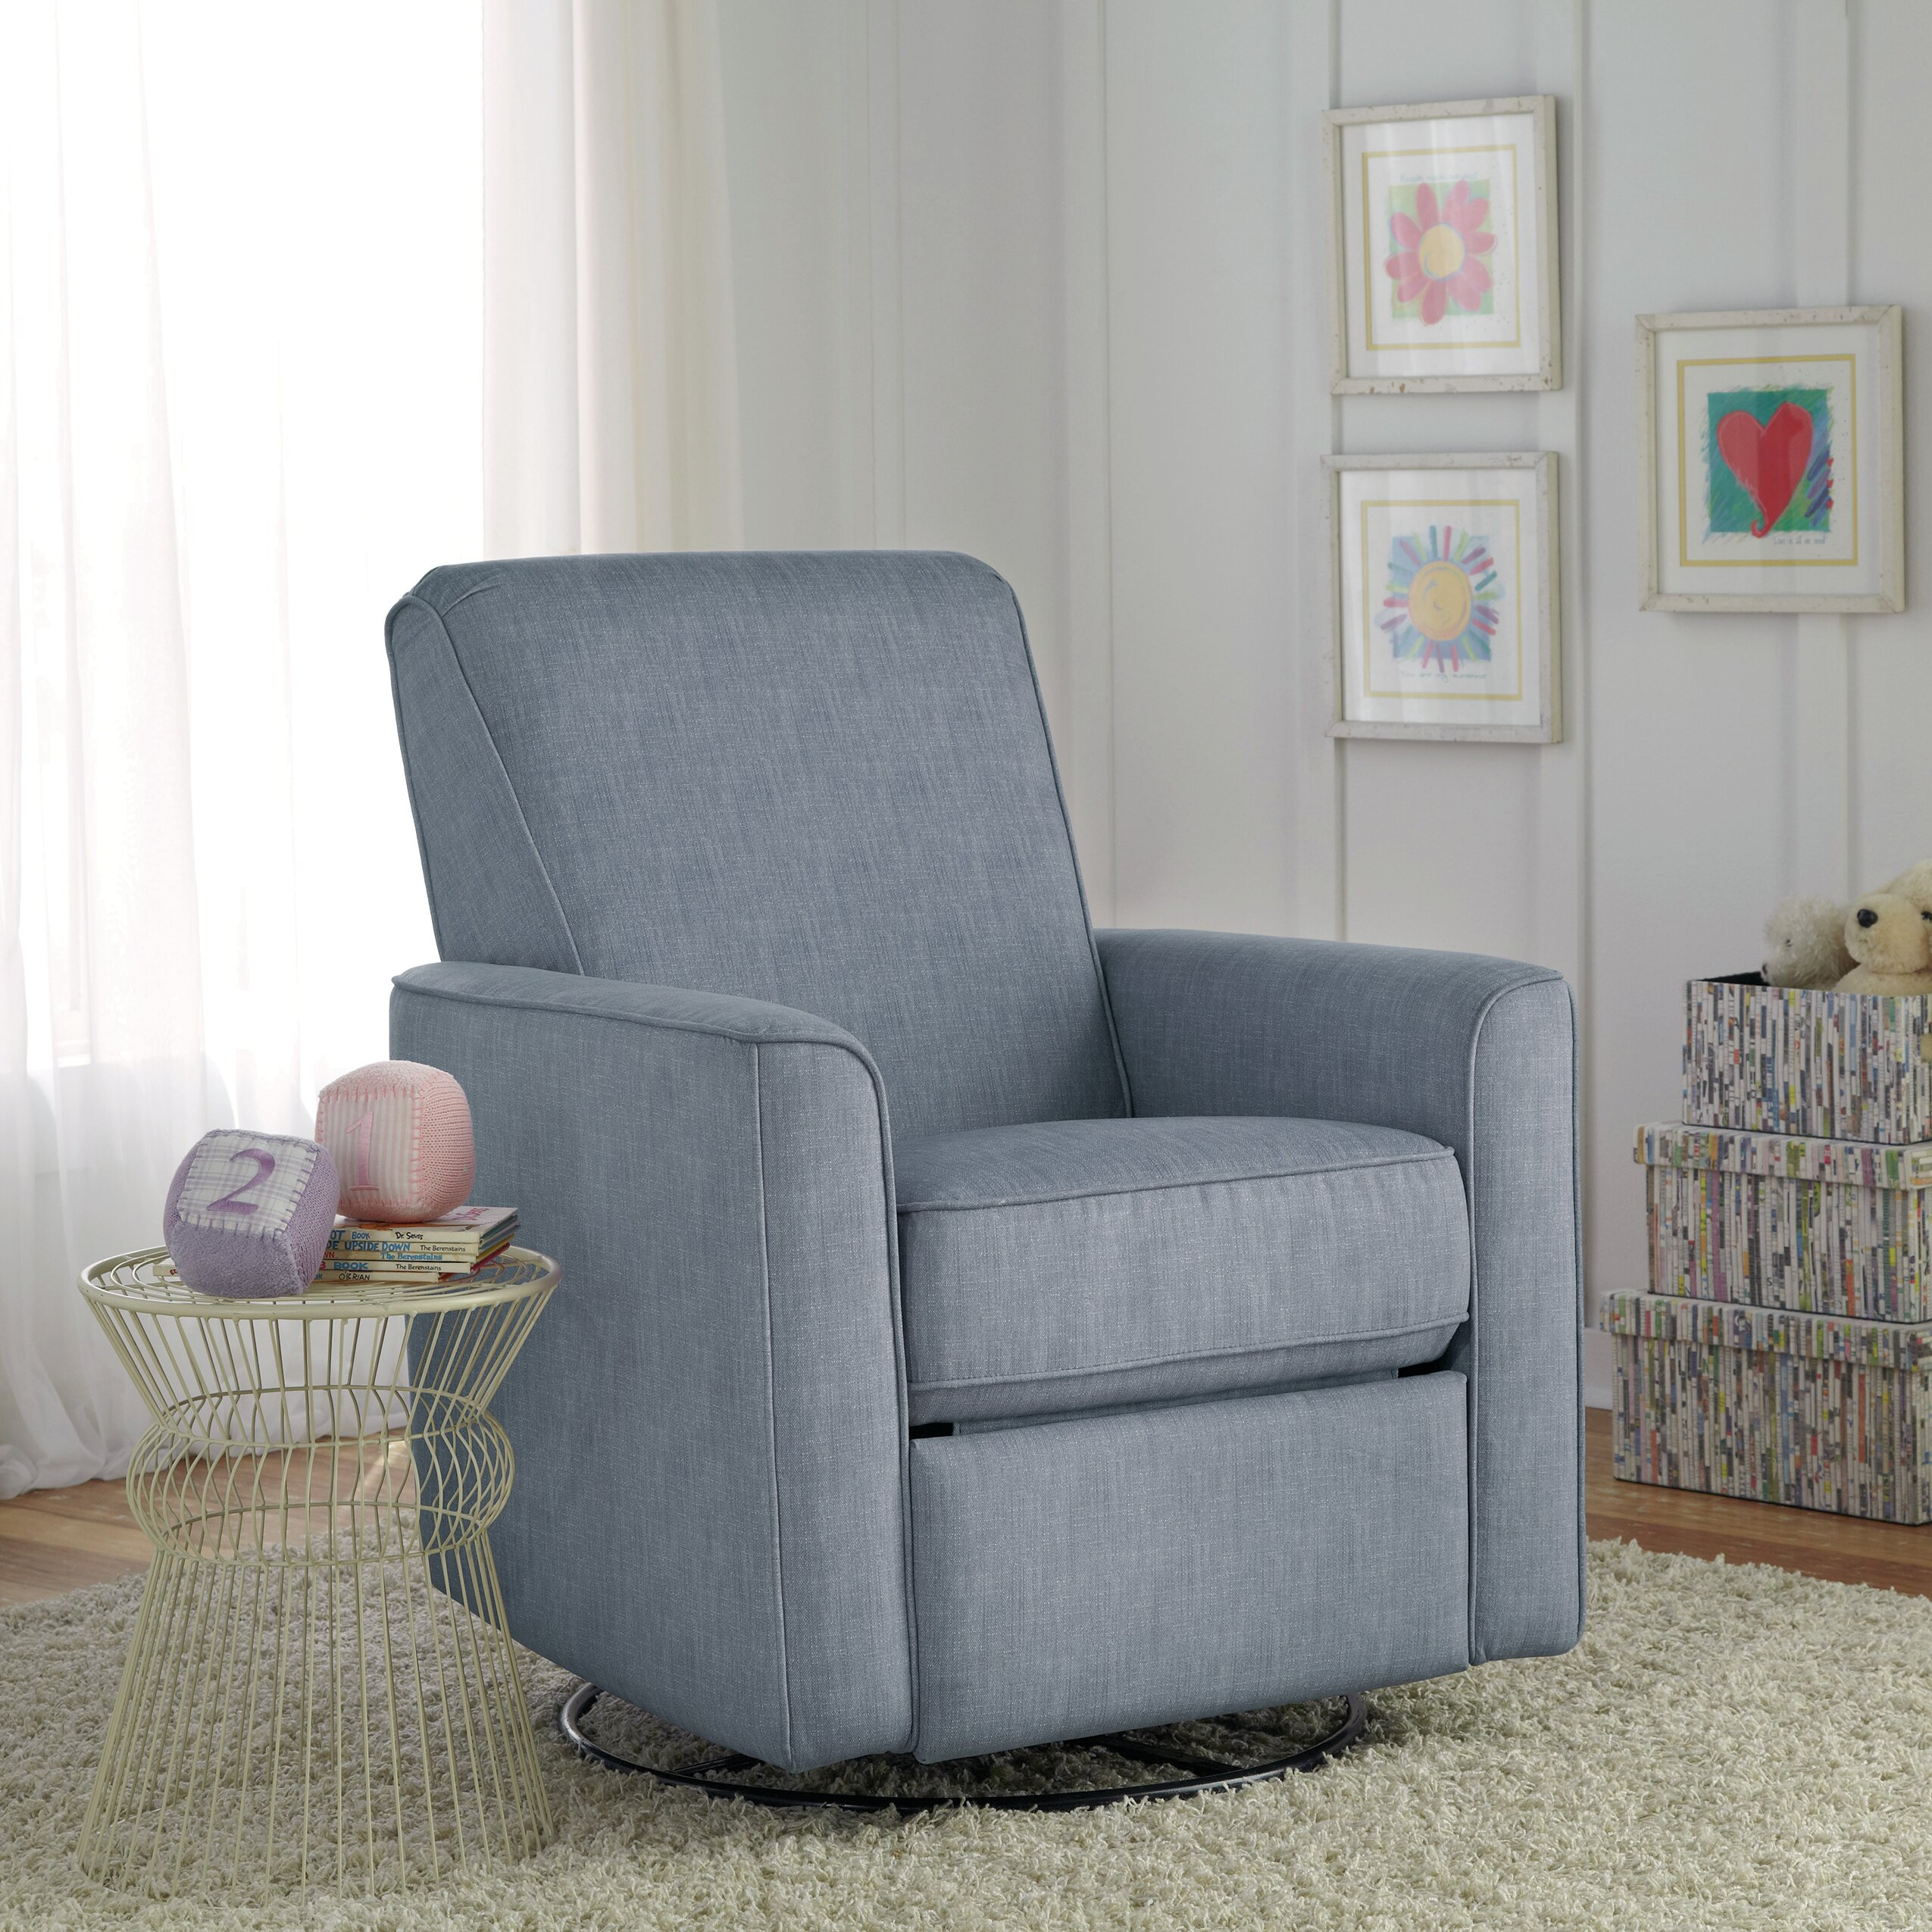 chairs eng glider recliner mikayla living sourceimage recliners gray gliding swivel dorel products relax details baby